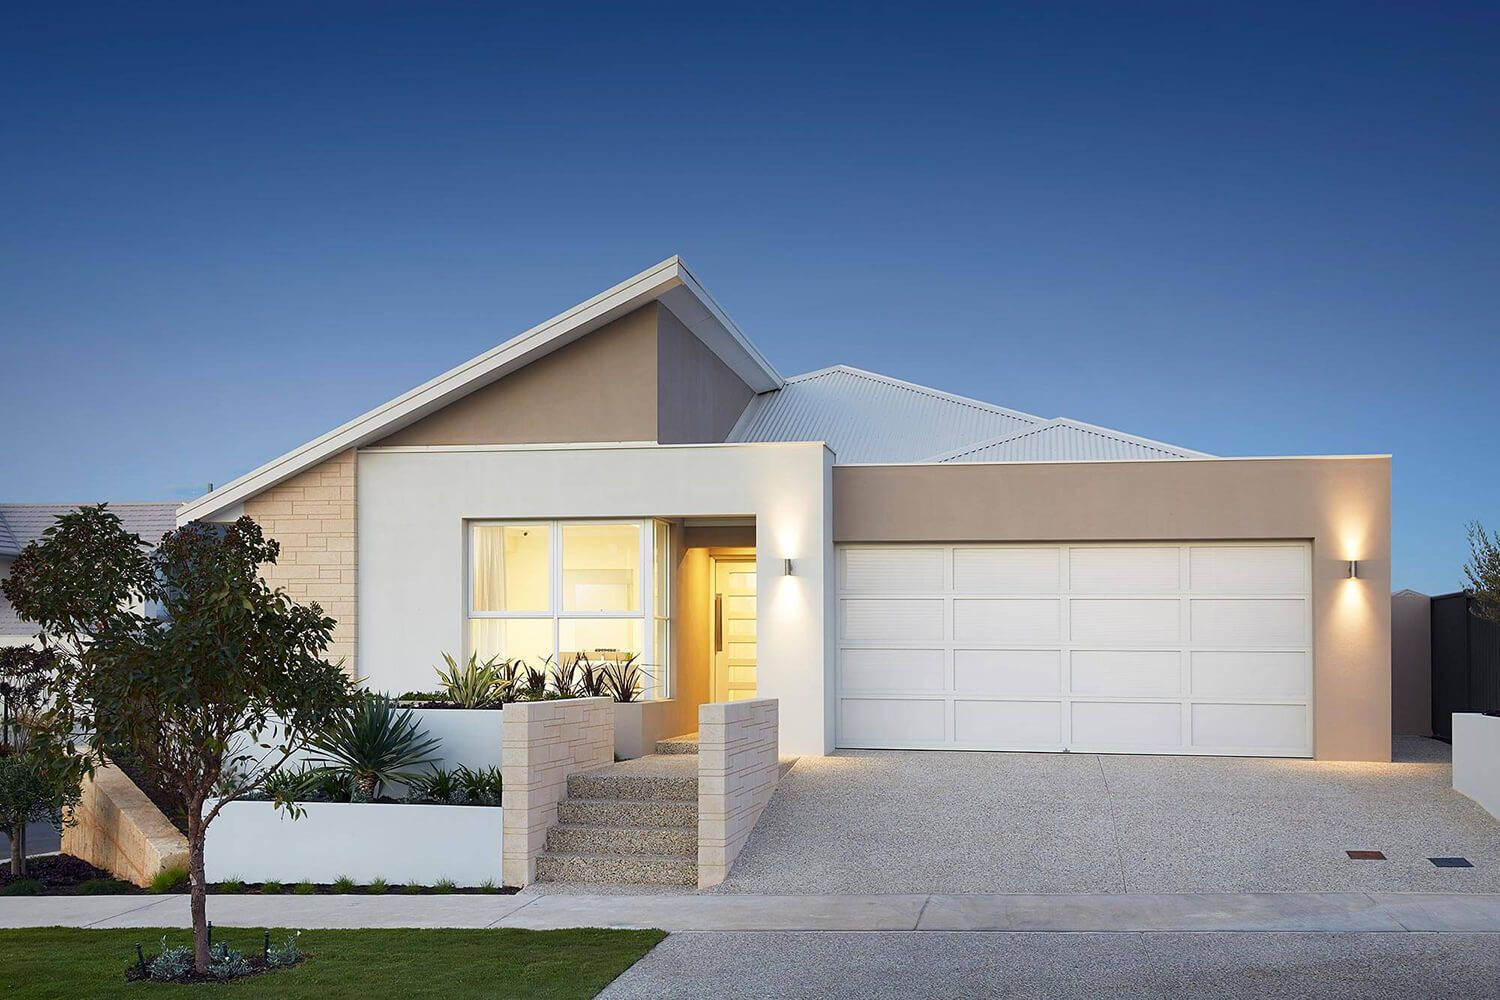 Just opened our brand new display the brookstead is a must see just opened our brand new display the brookstead is a must see view it at 63 jennapullin crescent ellenbrook drop in and say hi this week malvernweather Choice Image